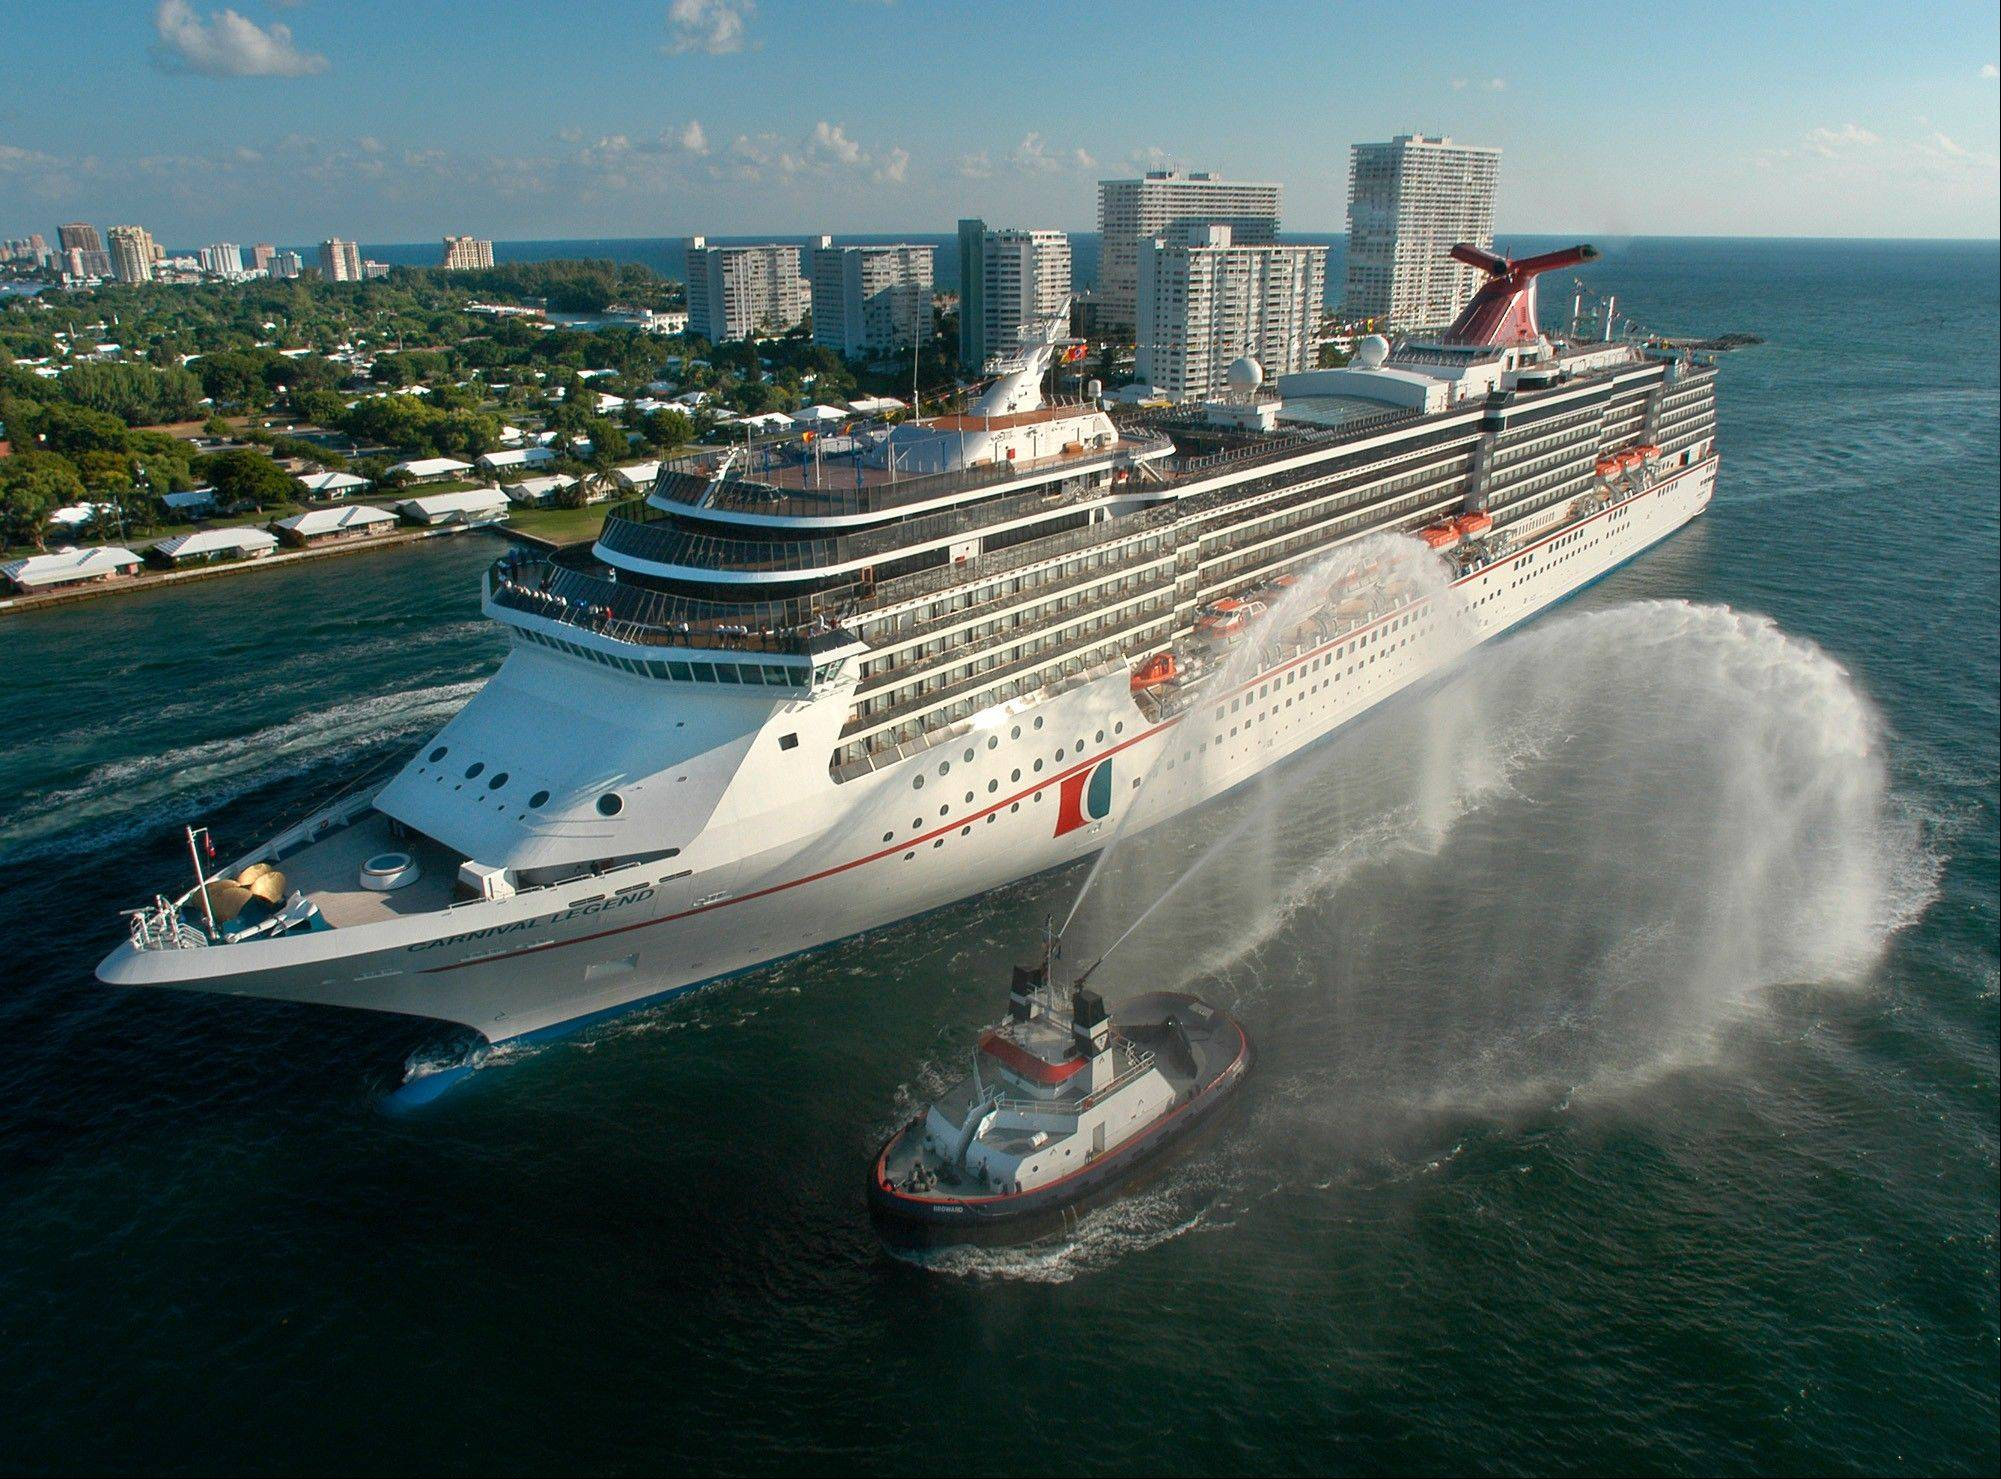 The Carnival Legend, a 2,100-passenger, 960-foot-long cruise ship, is seen here in 2002. Carnival Cruise Lines said on Sunday that the Carnival Legend, which experienced technical issues with its propulsion system and canceled one stop, has arrived as scheduled in Tampa, Fla.